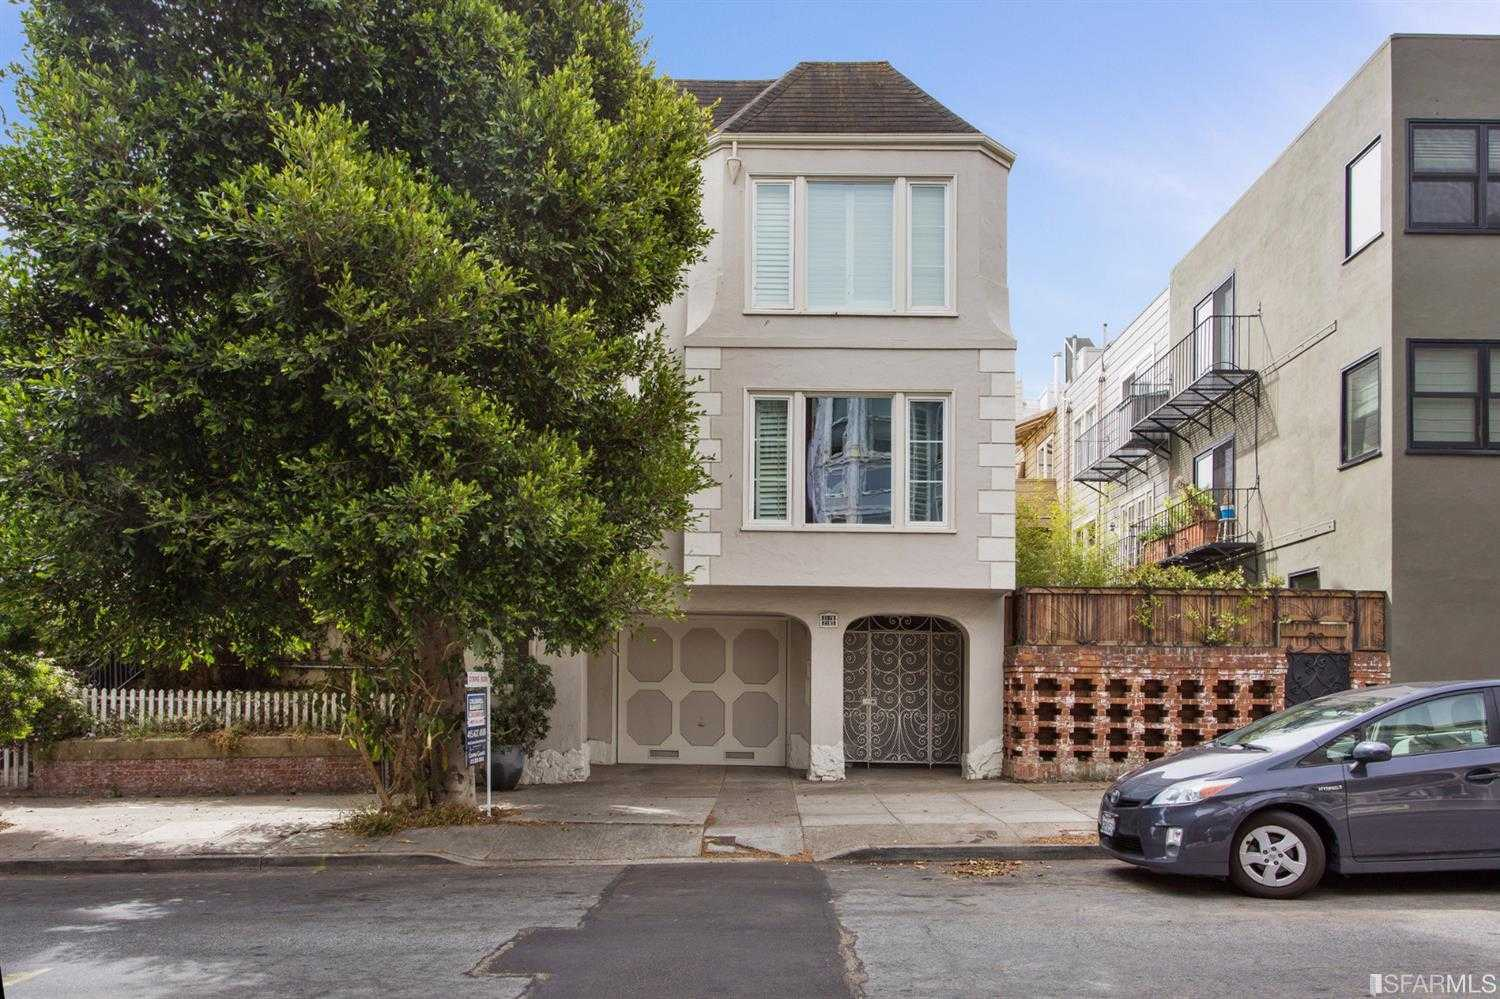 Duboce triangle homes for sale in san francisco ca for Homes for sale in san francisco